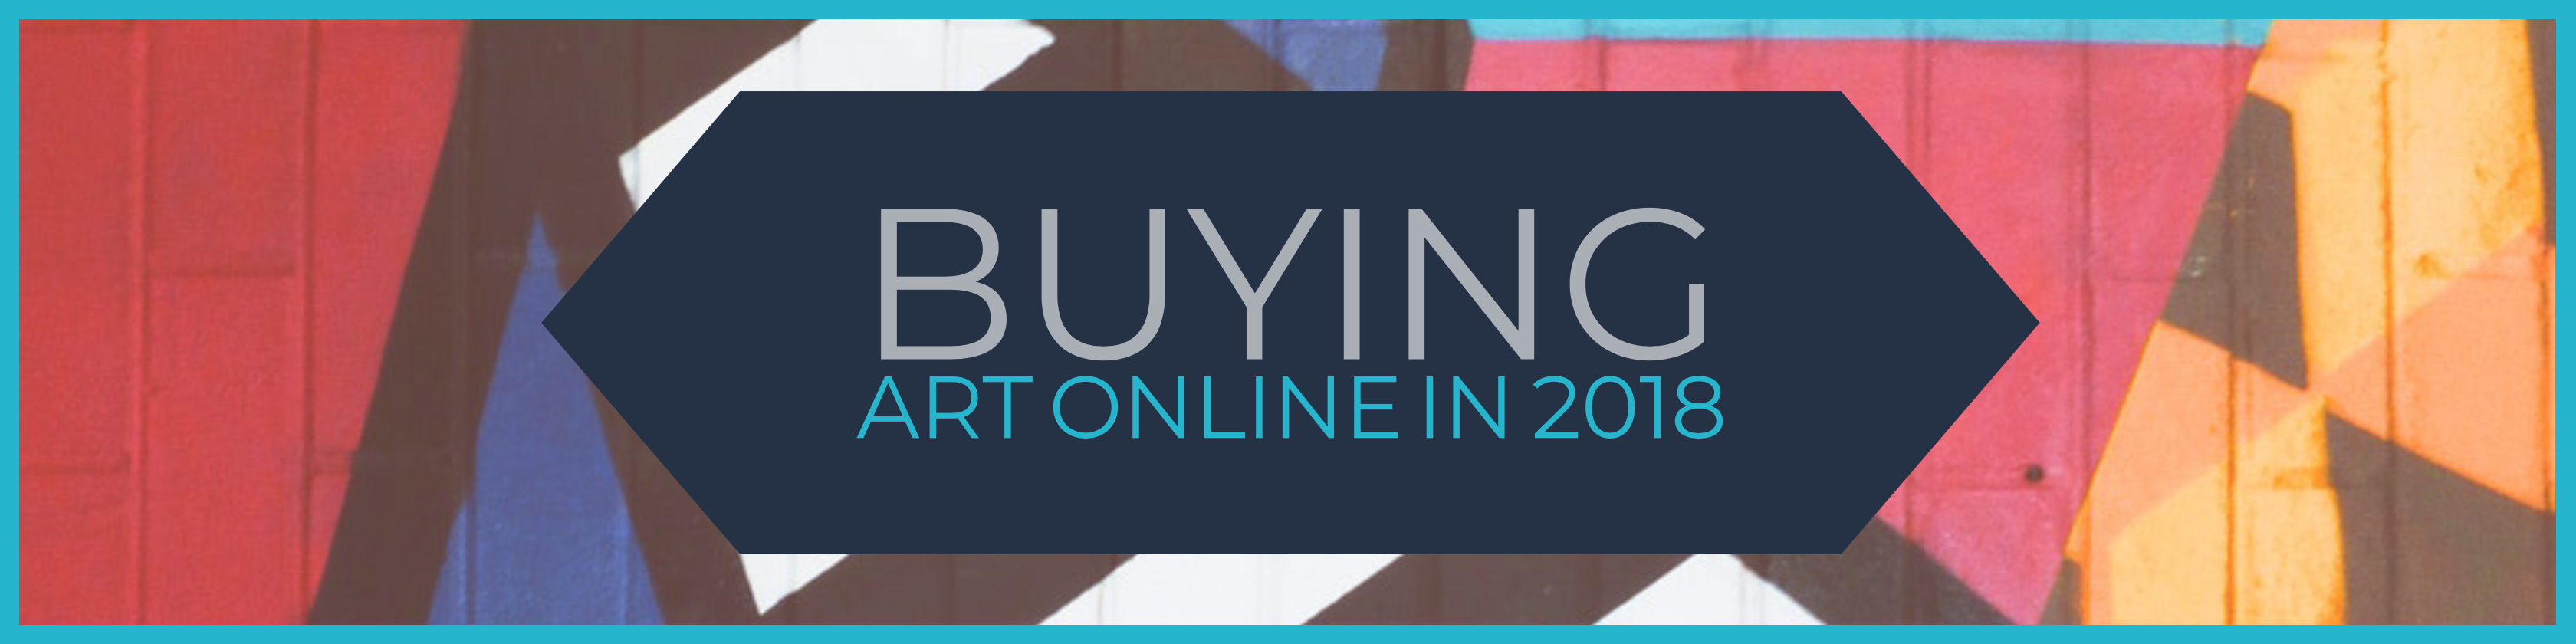 Buying Art Online In 2018